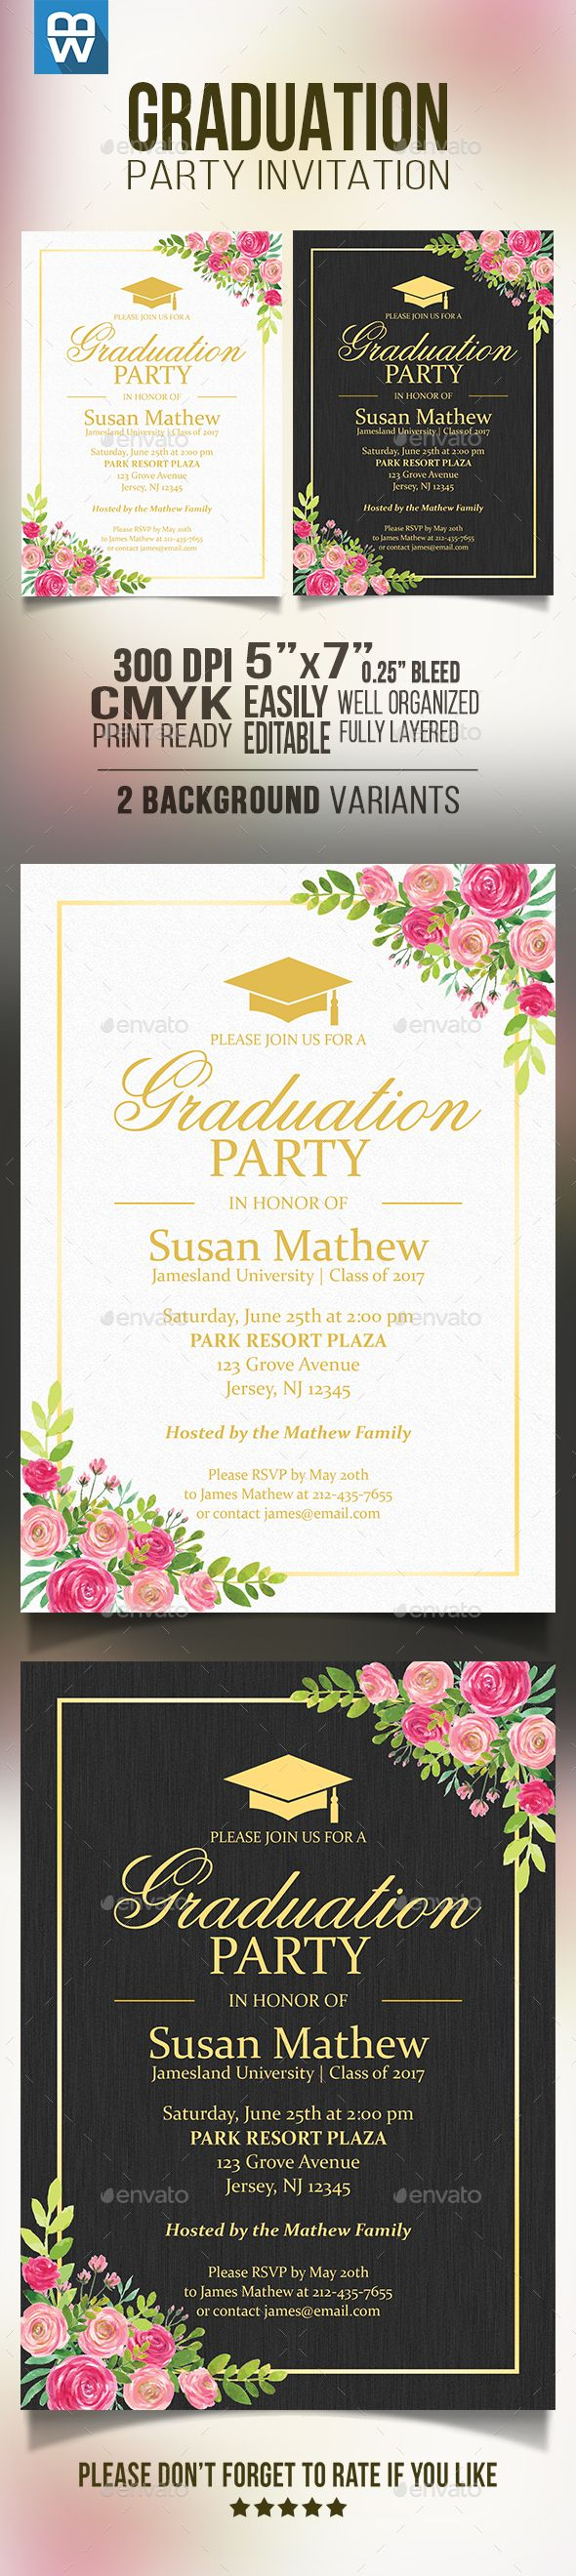 Floral Graduation Party Invitation Party invitation templates